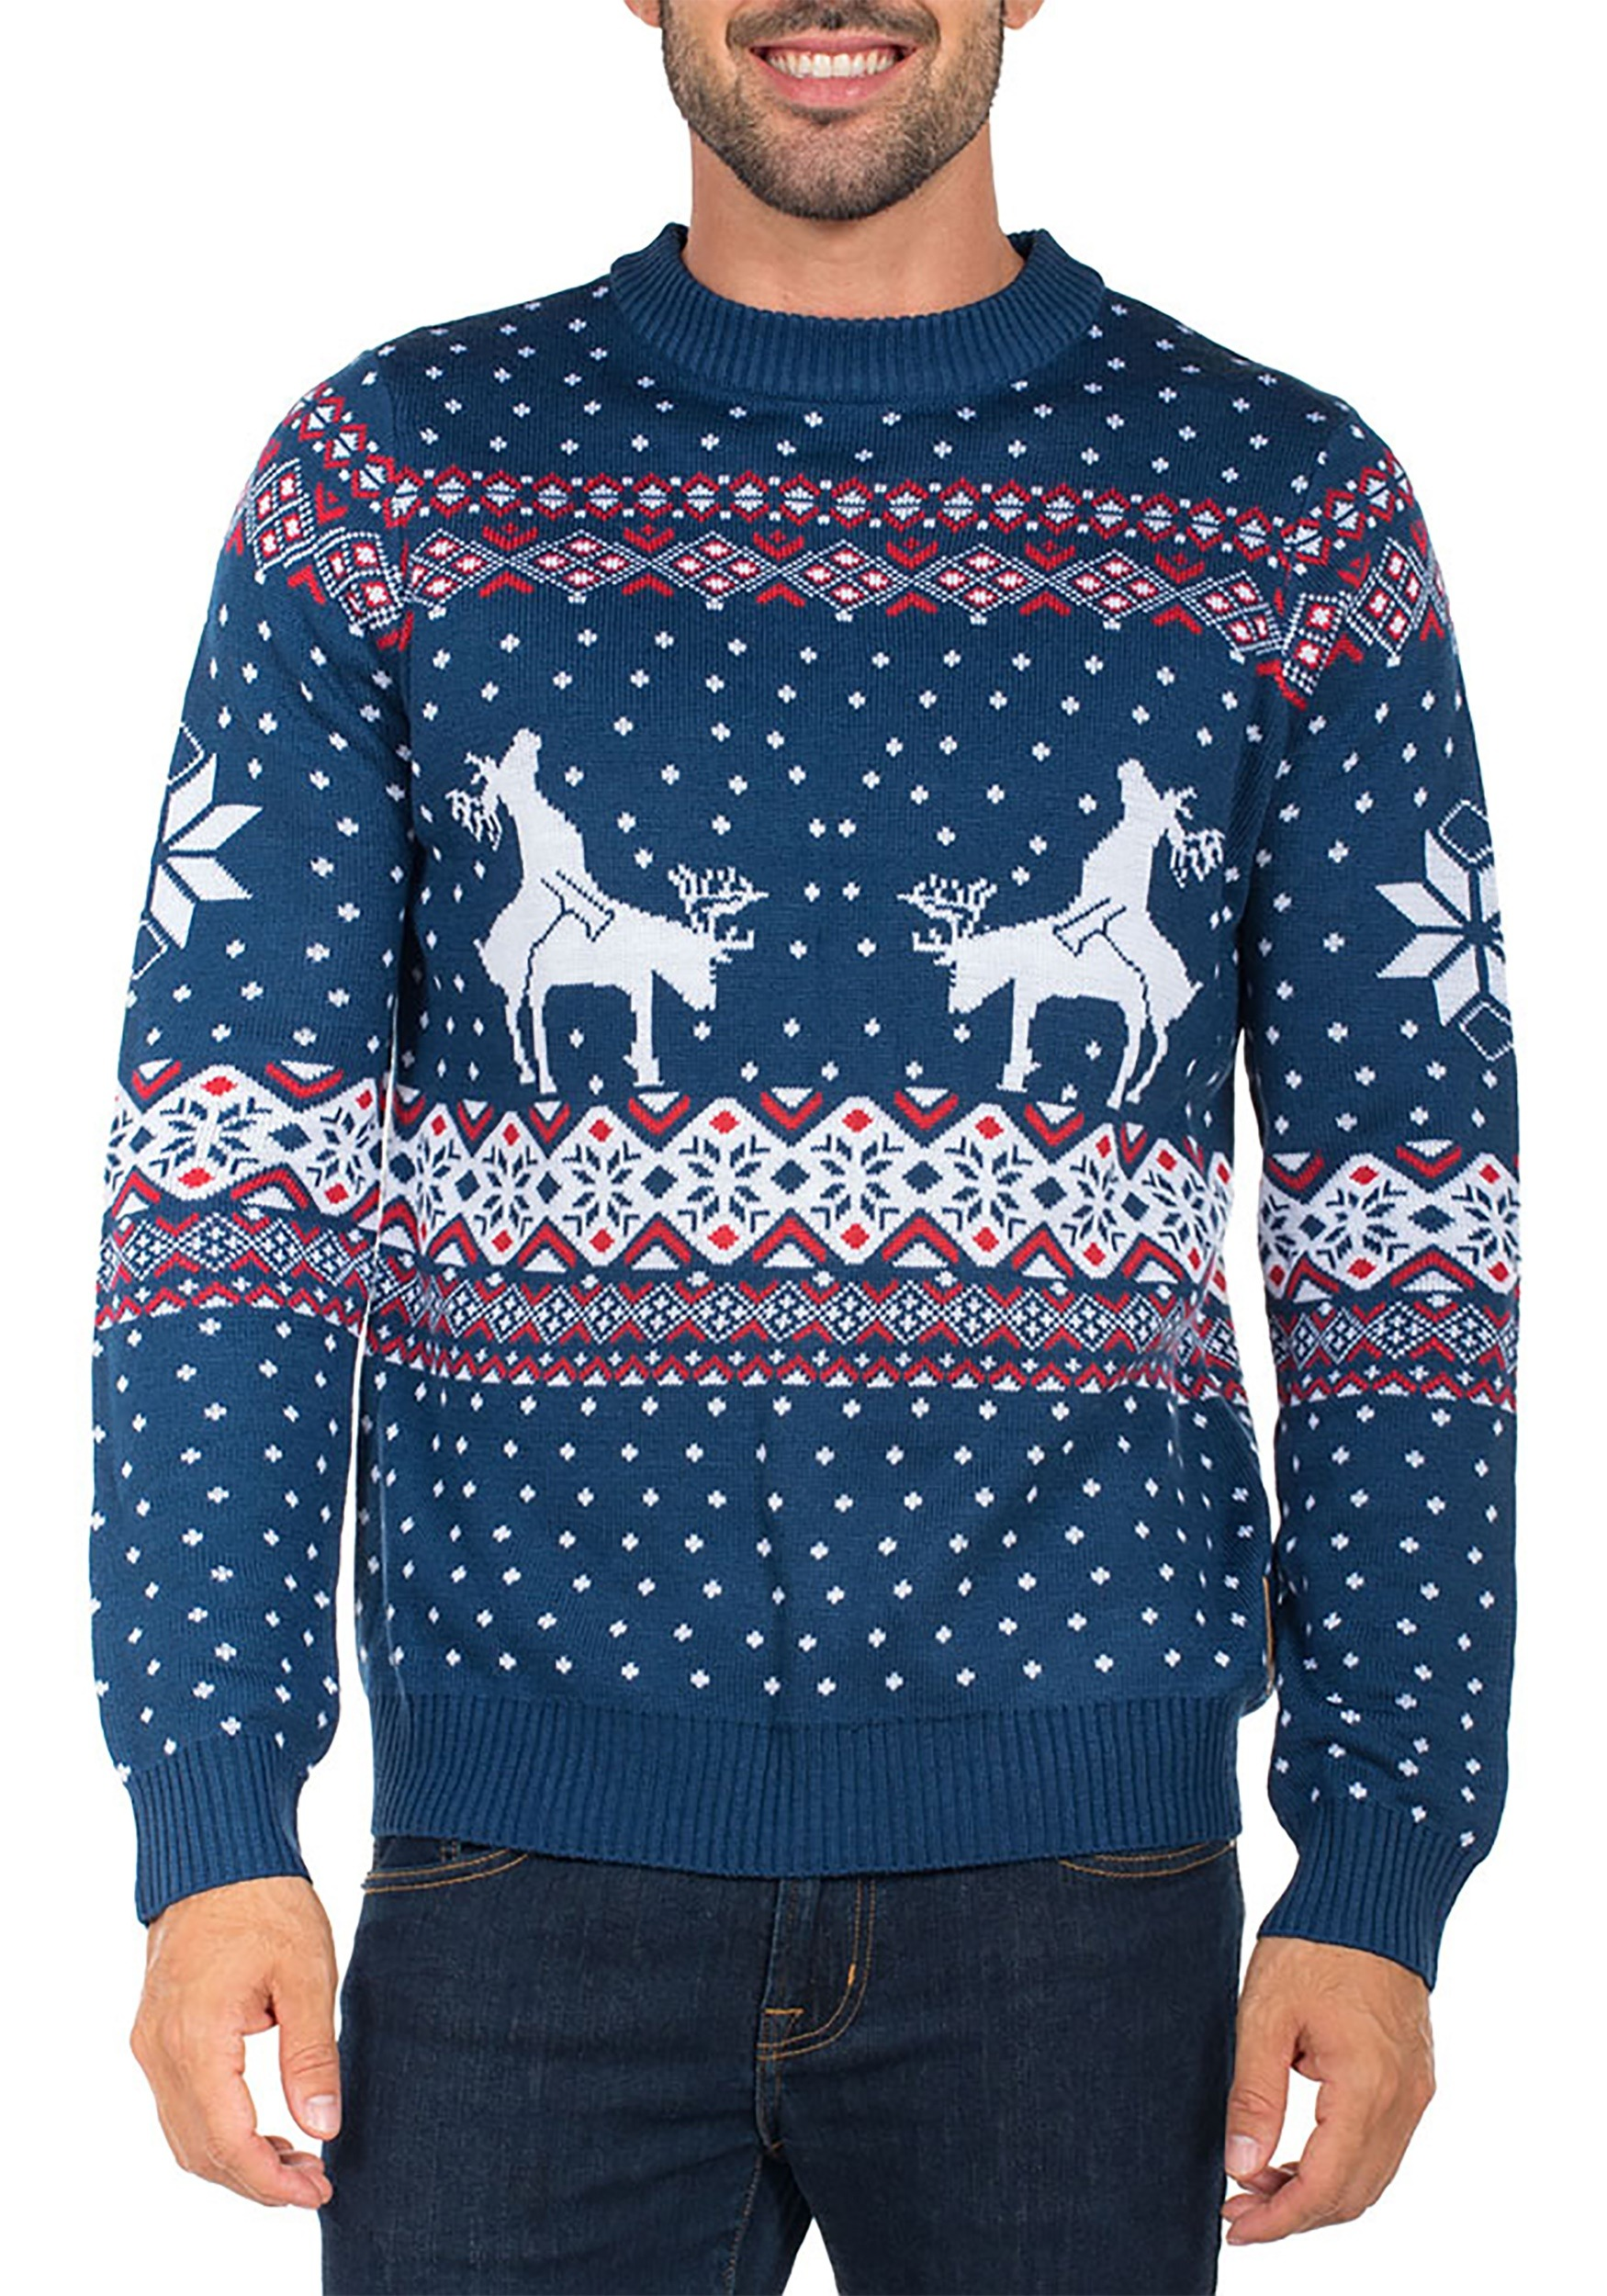 Tipsy Elves Reindeer Climax Ugly Christmas Sweater